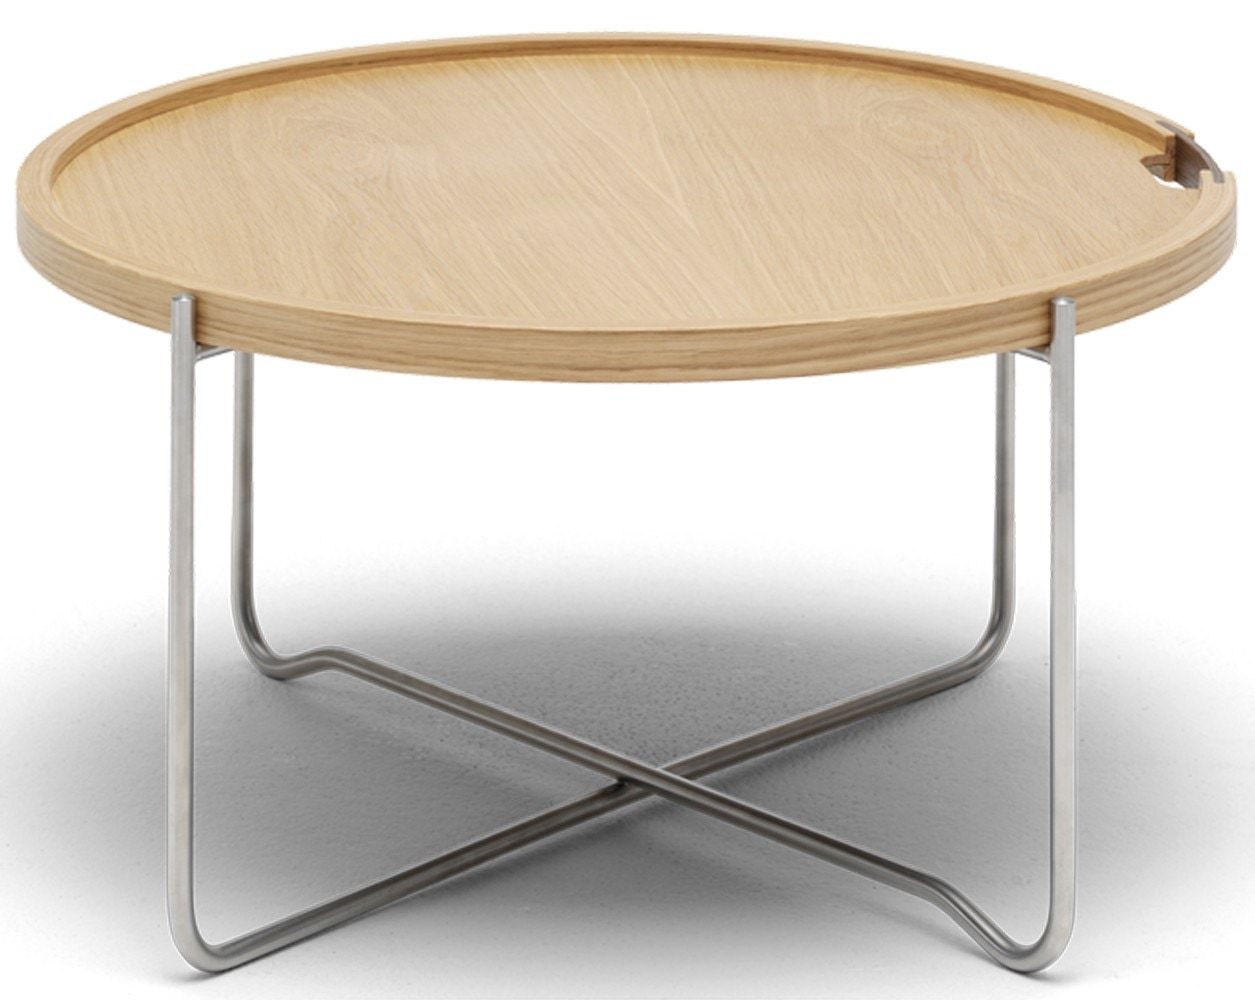 Carl hansen son ch417 tray table